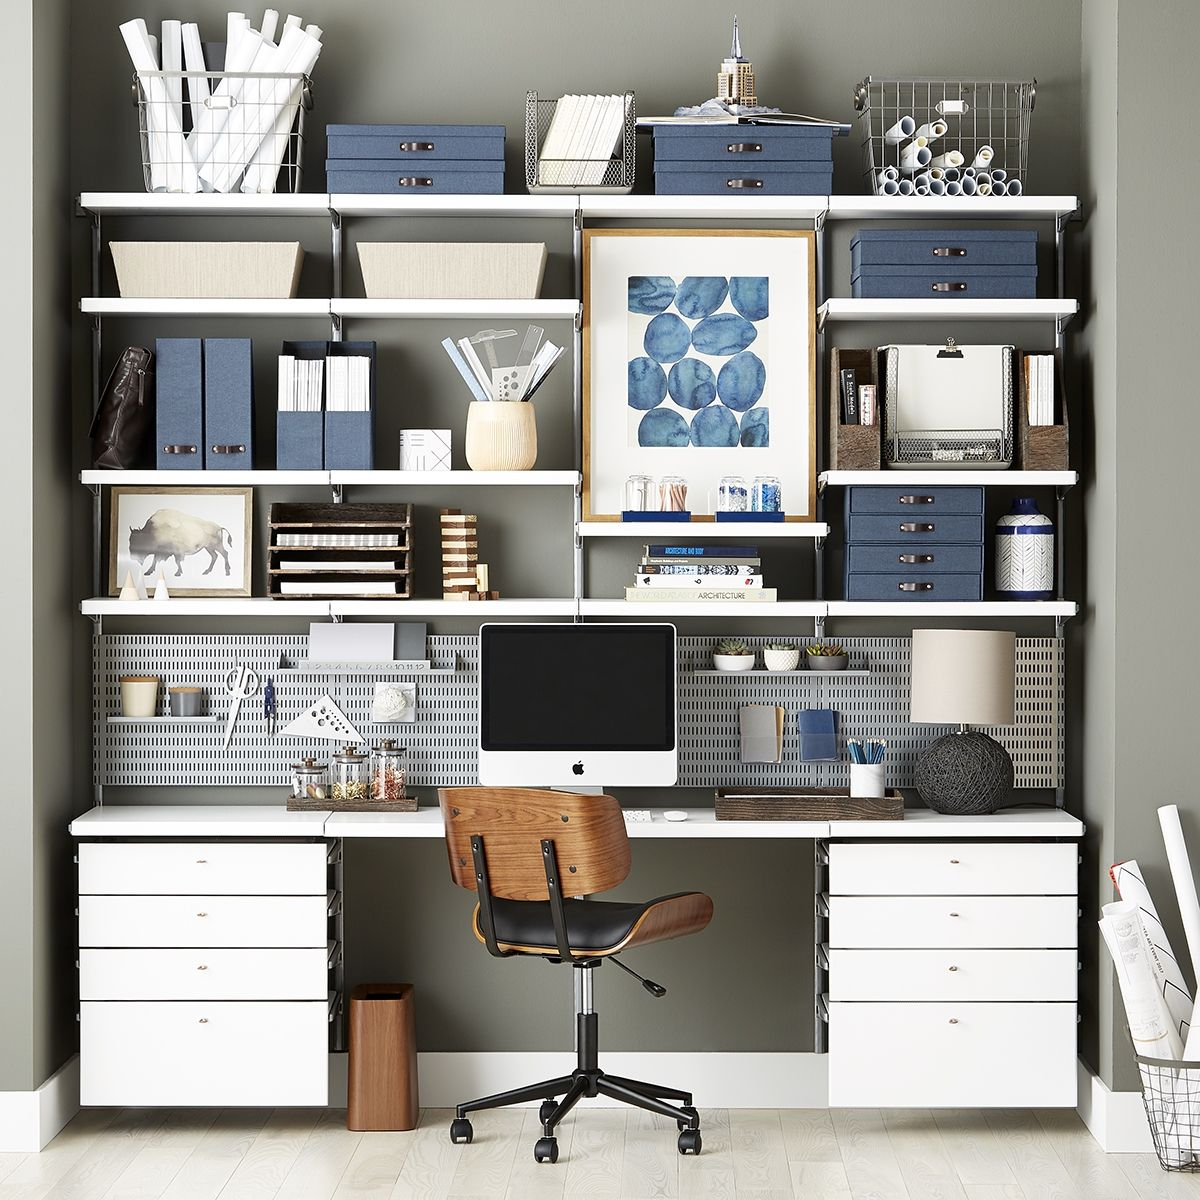 Create A Custom Home Office Solution With A Modular Shelving Designed For Your Unique Needs Office Shelving Office Wall Shelves Home Office Design